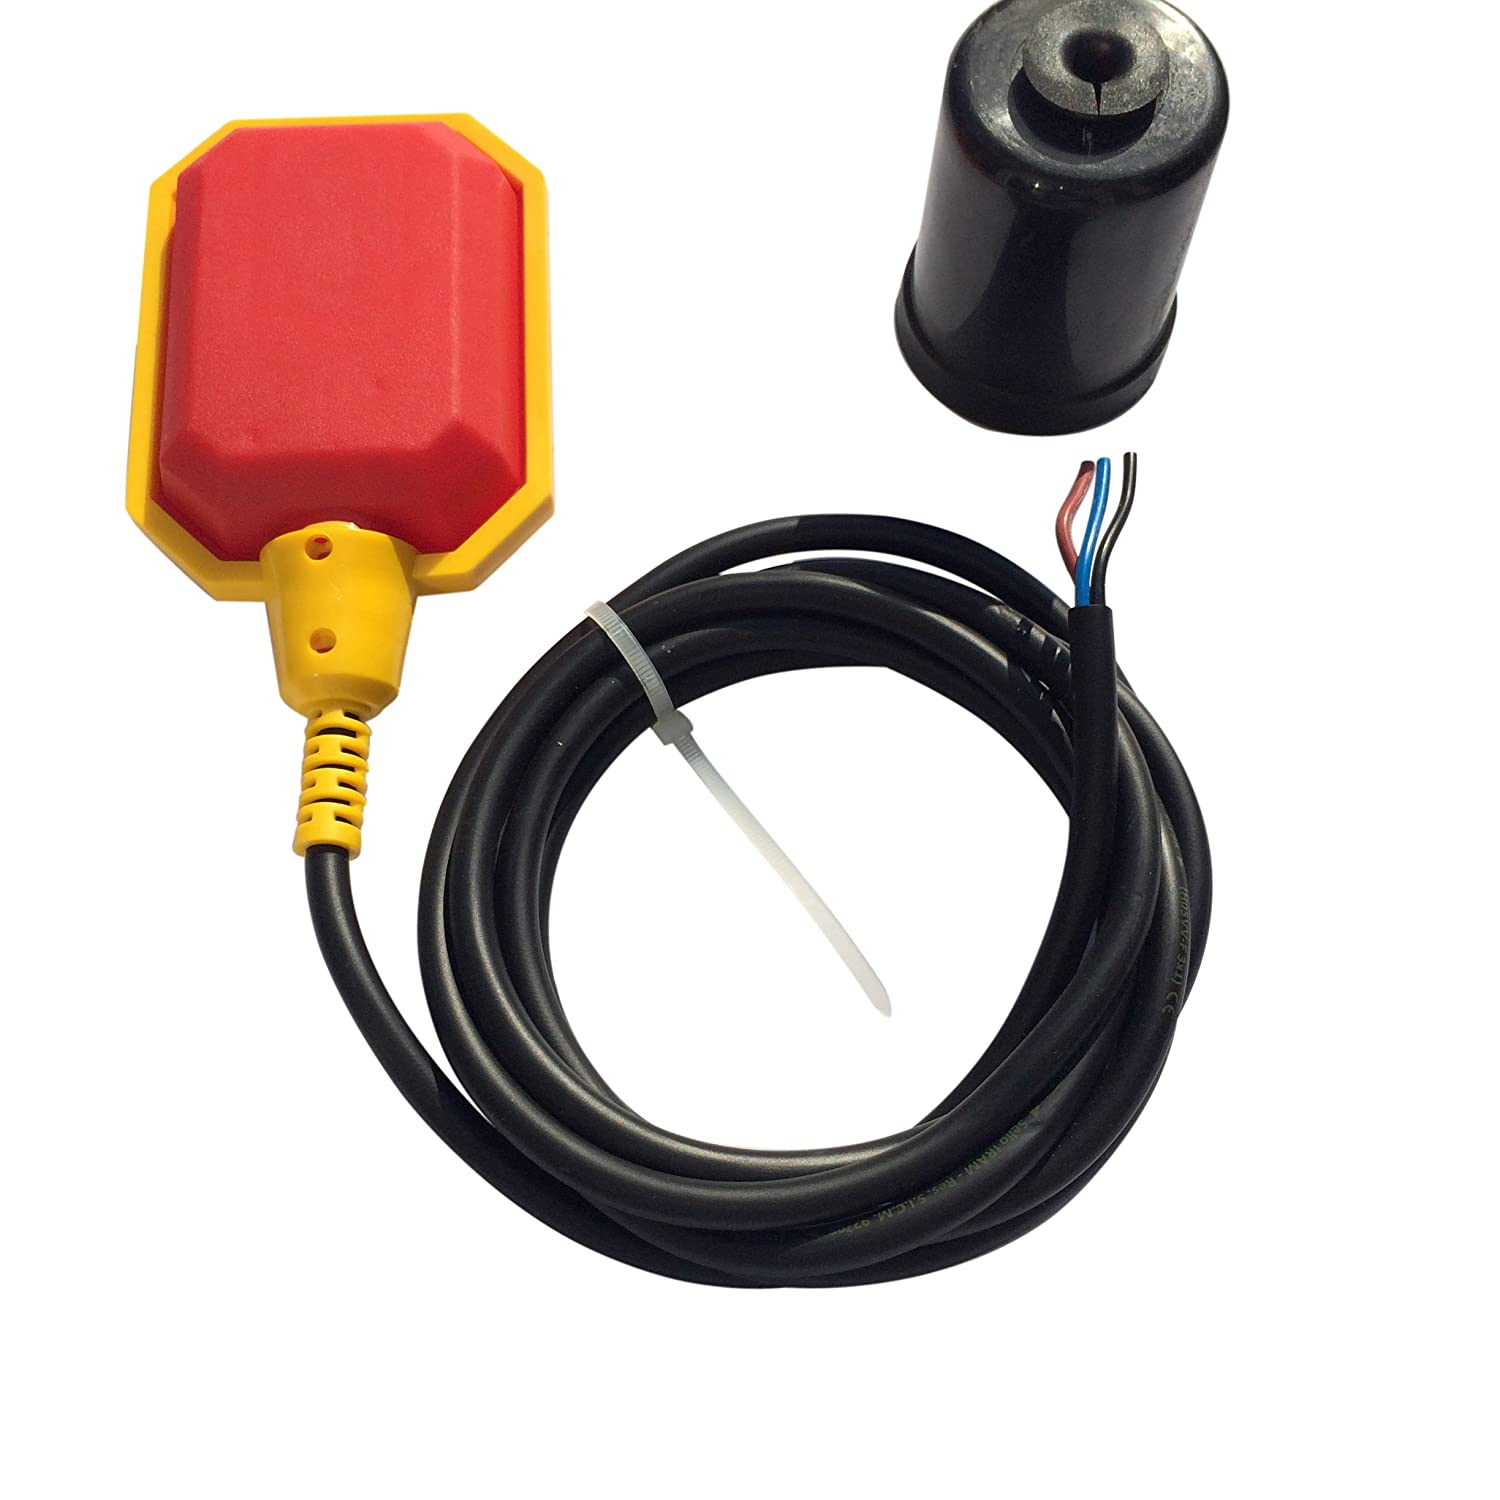 Float Switch w / 10 ft Cable, Septic System, Sump Pump, Water Tank - Sump  Pump Accessories - Amazon.com